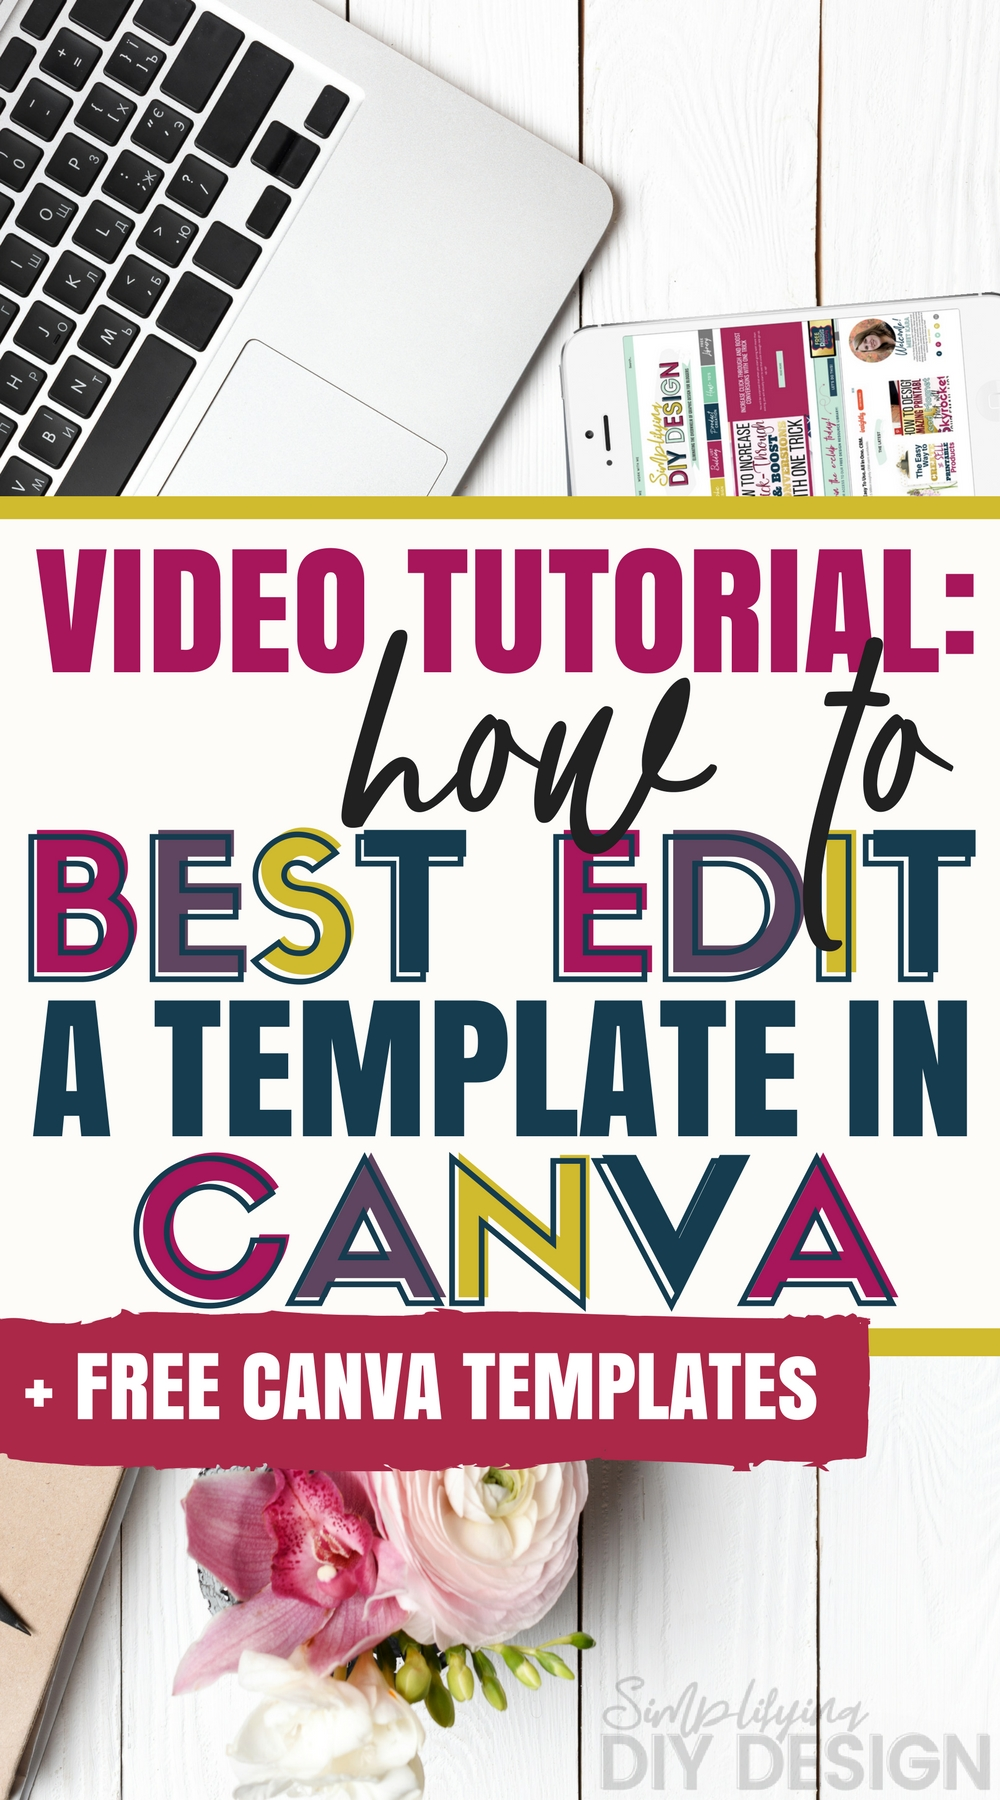 Image with title: How to Best Edit a Template in Canva